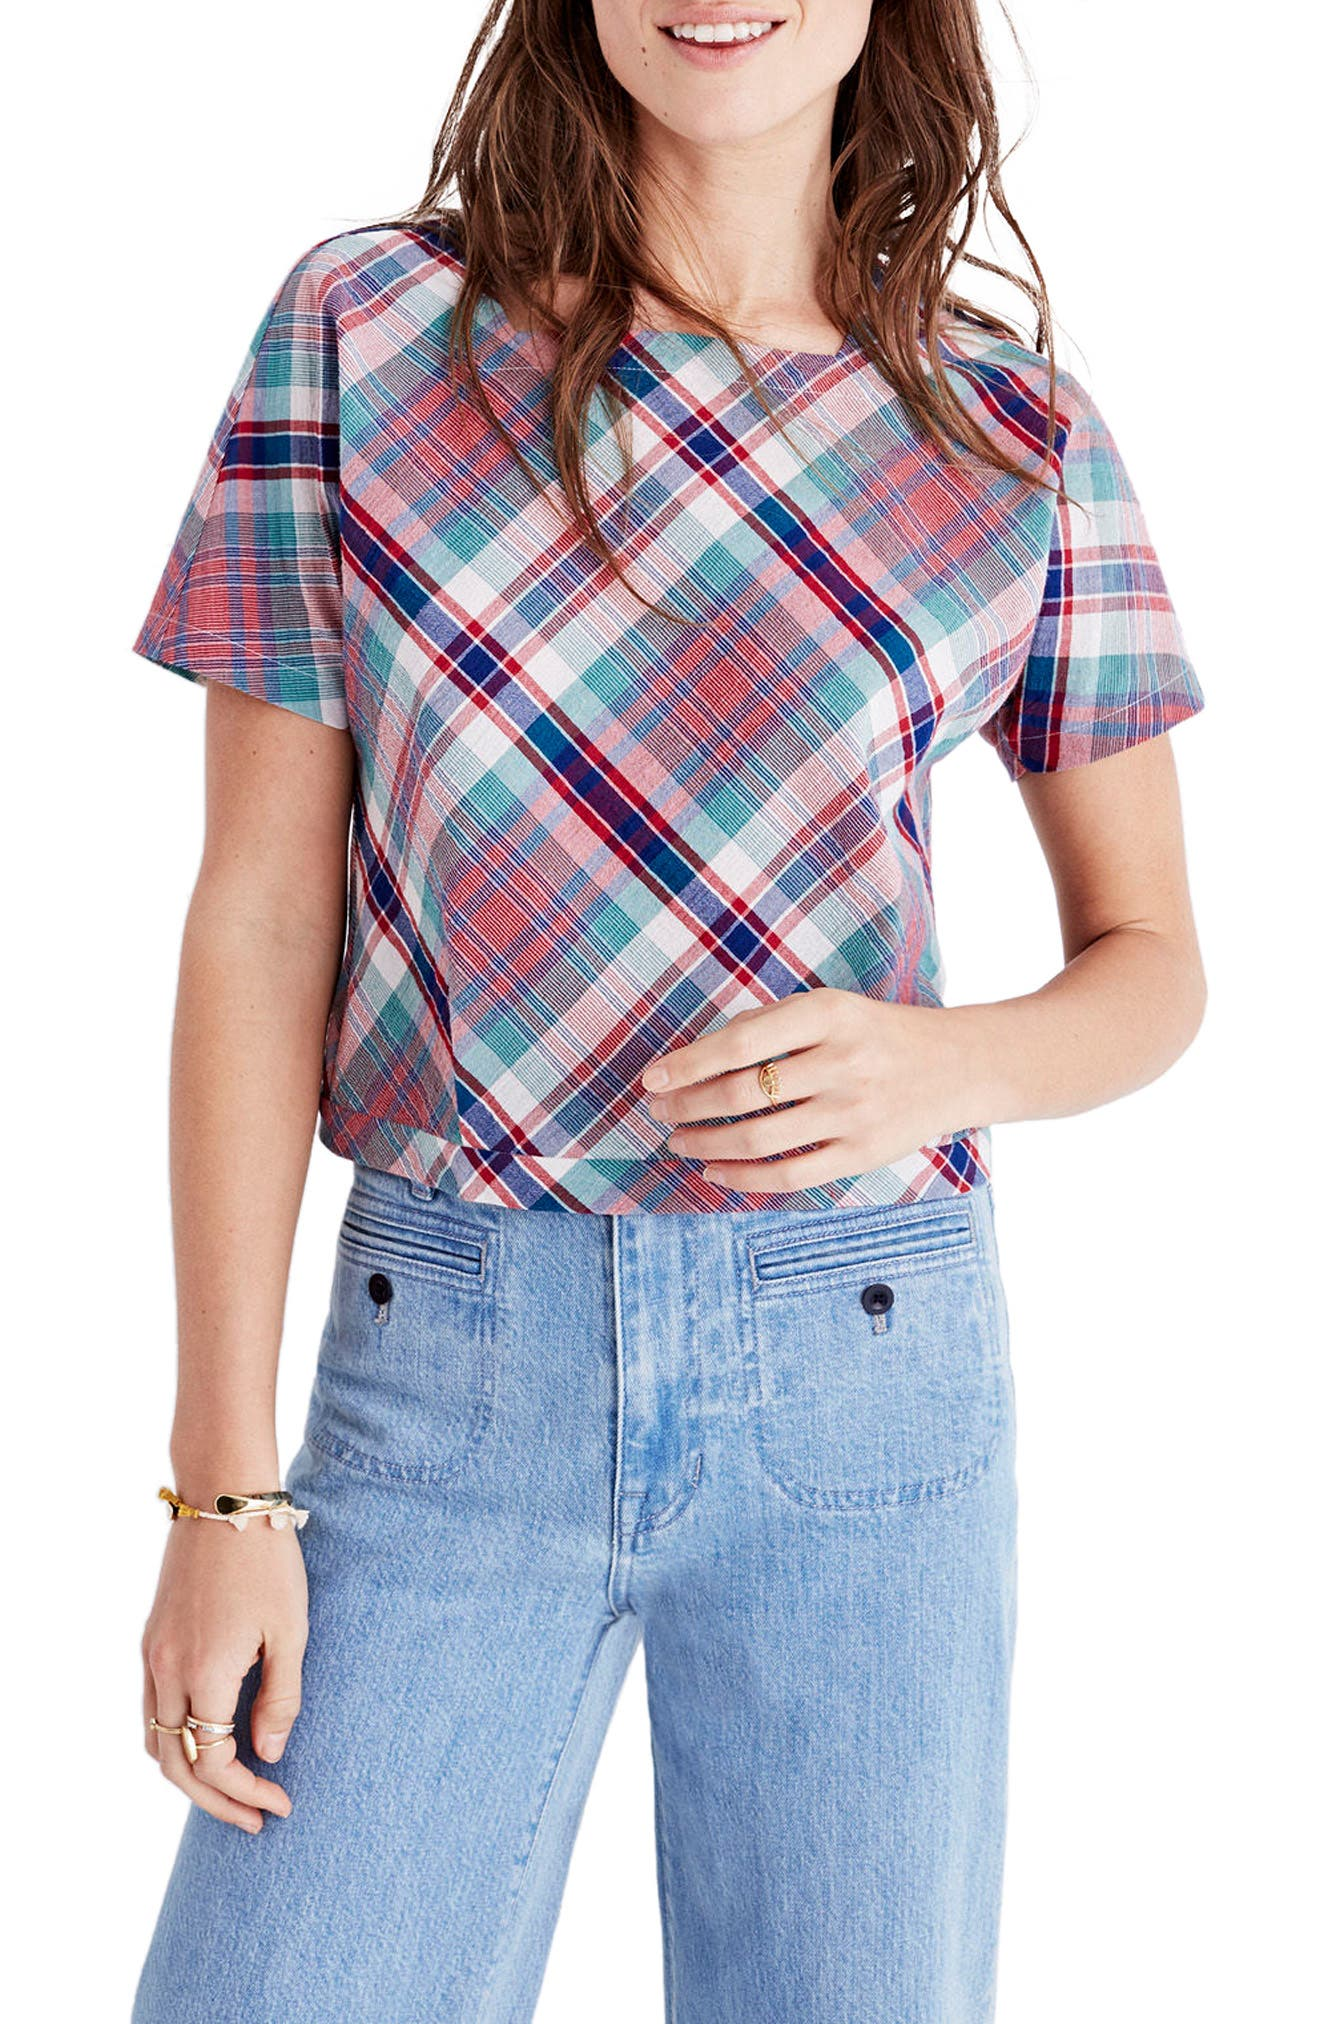 Alternate Image 1 Selected - Madewell Plaid Tie Back Top